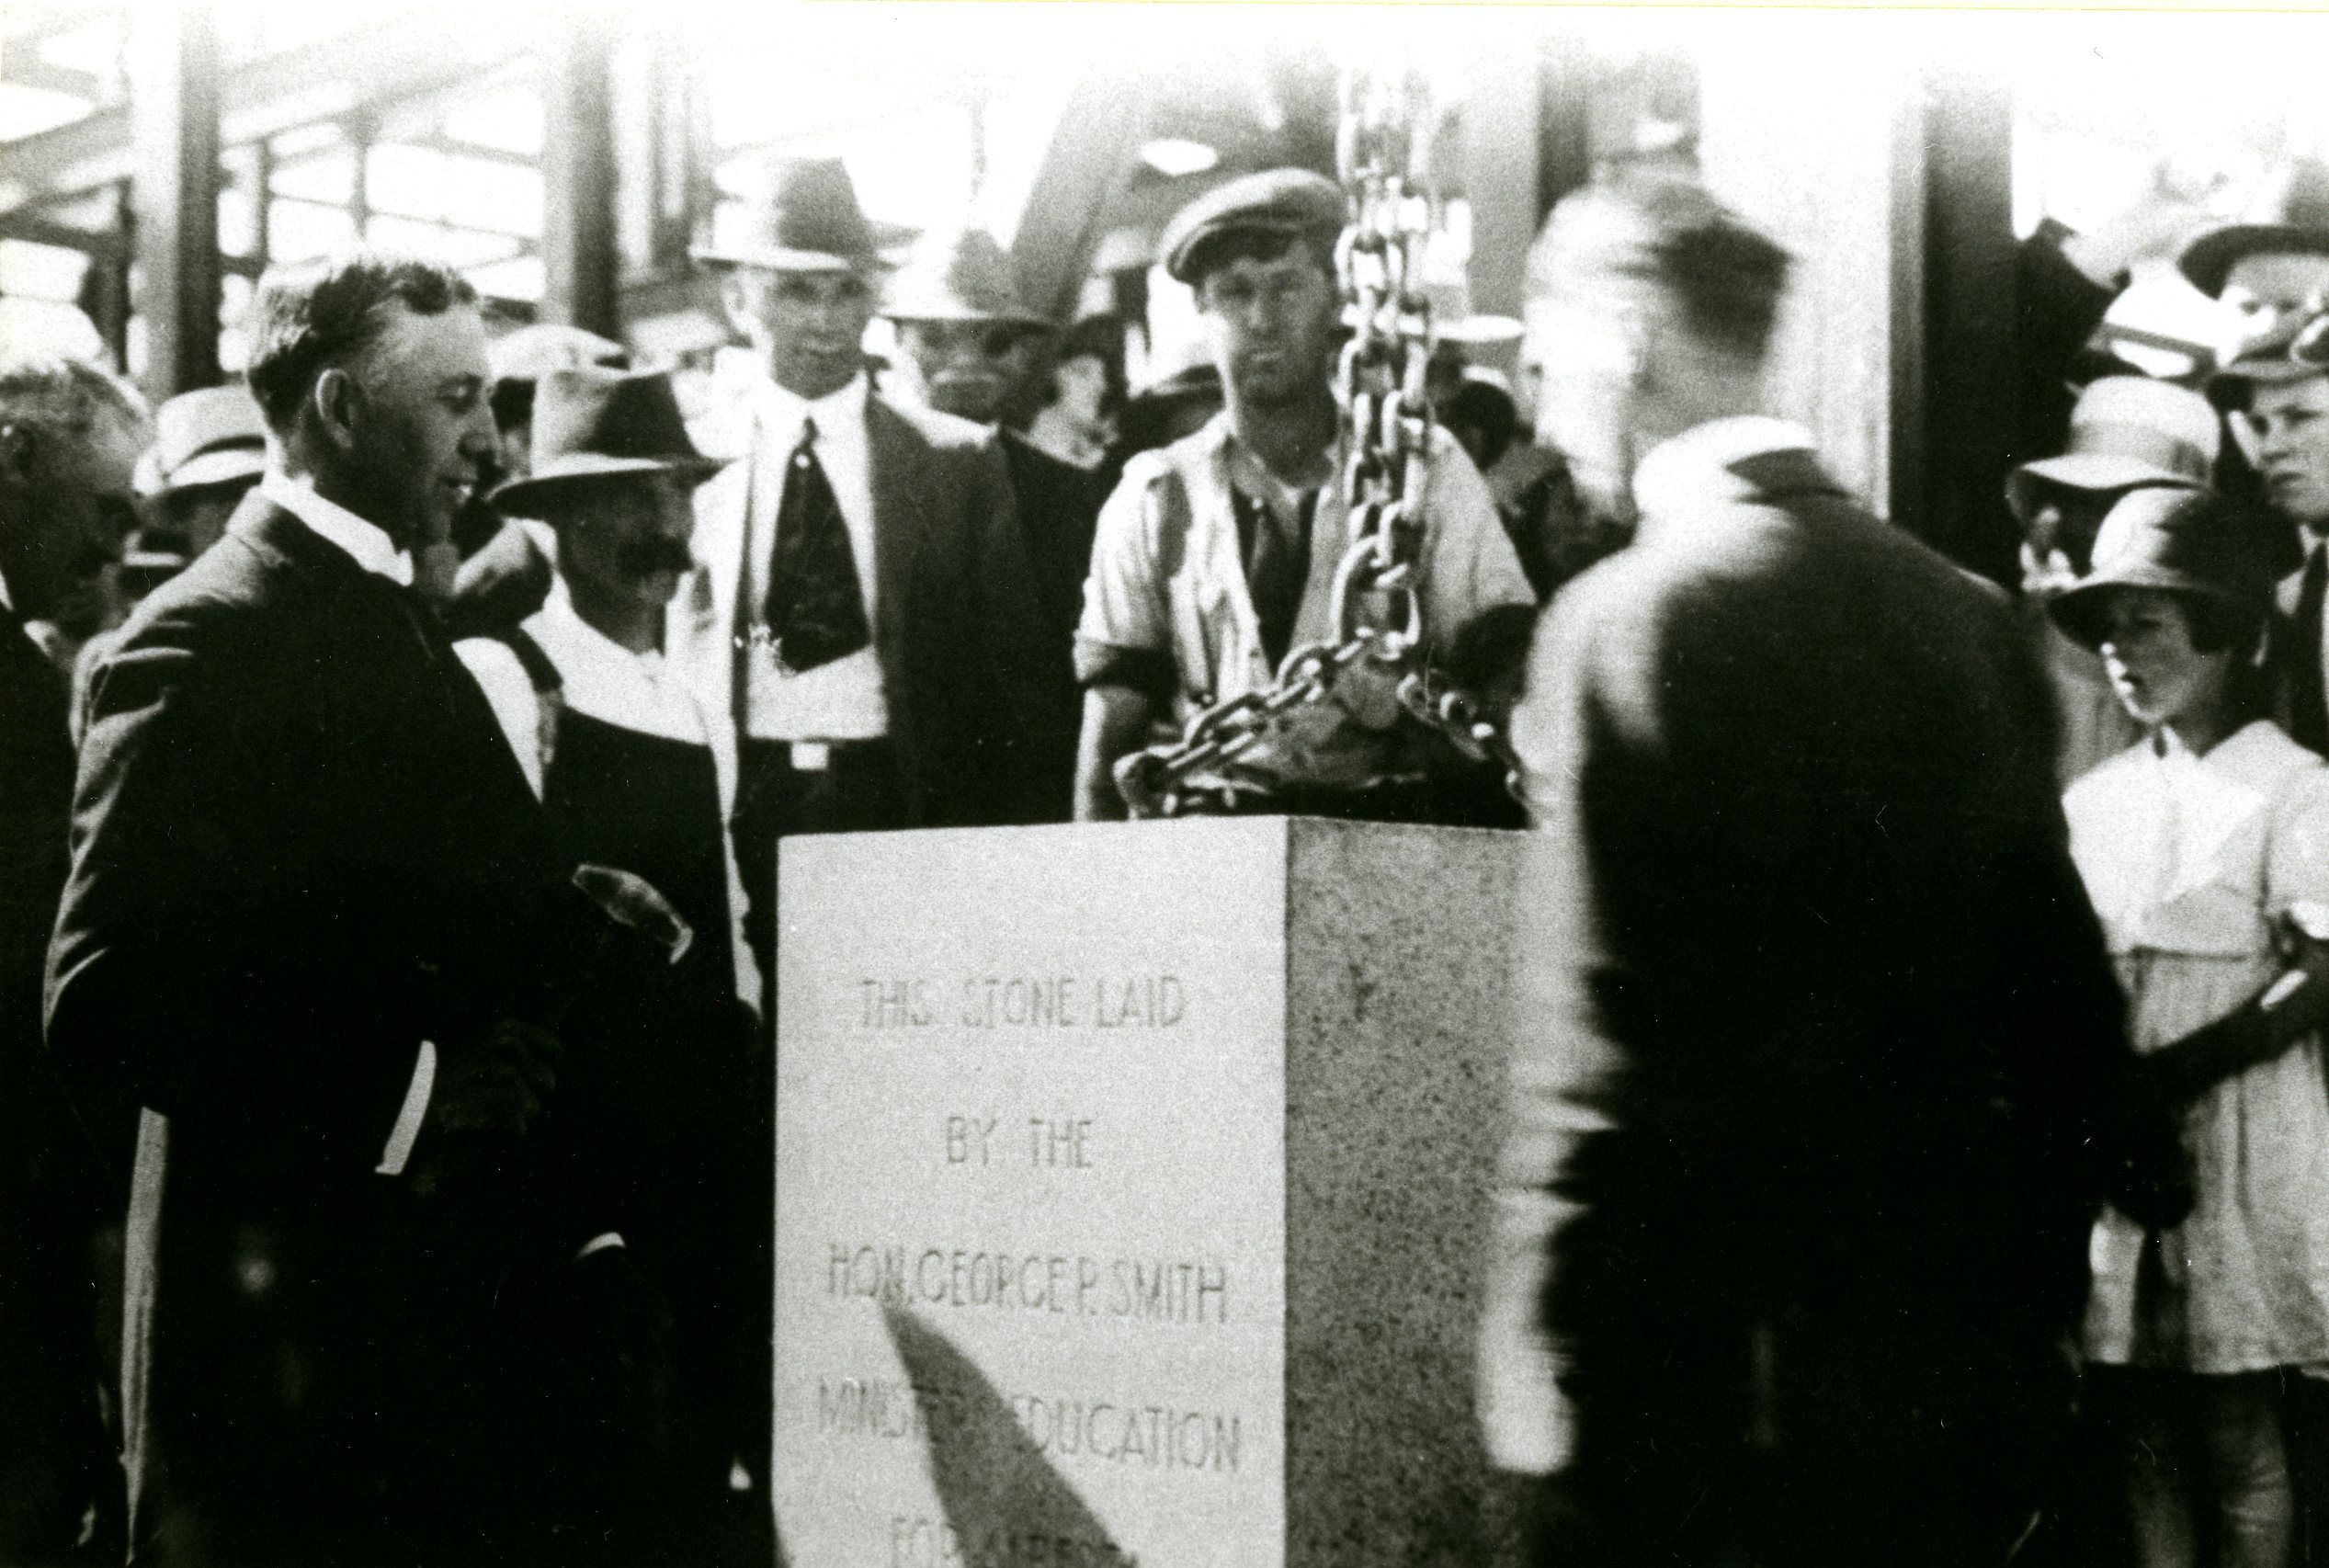 Laying the cornerstone of the Provincial Institute of Technology and Art. With permission of SAIT Archives